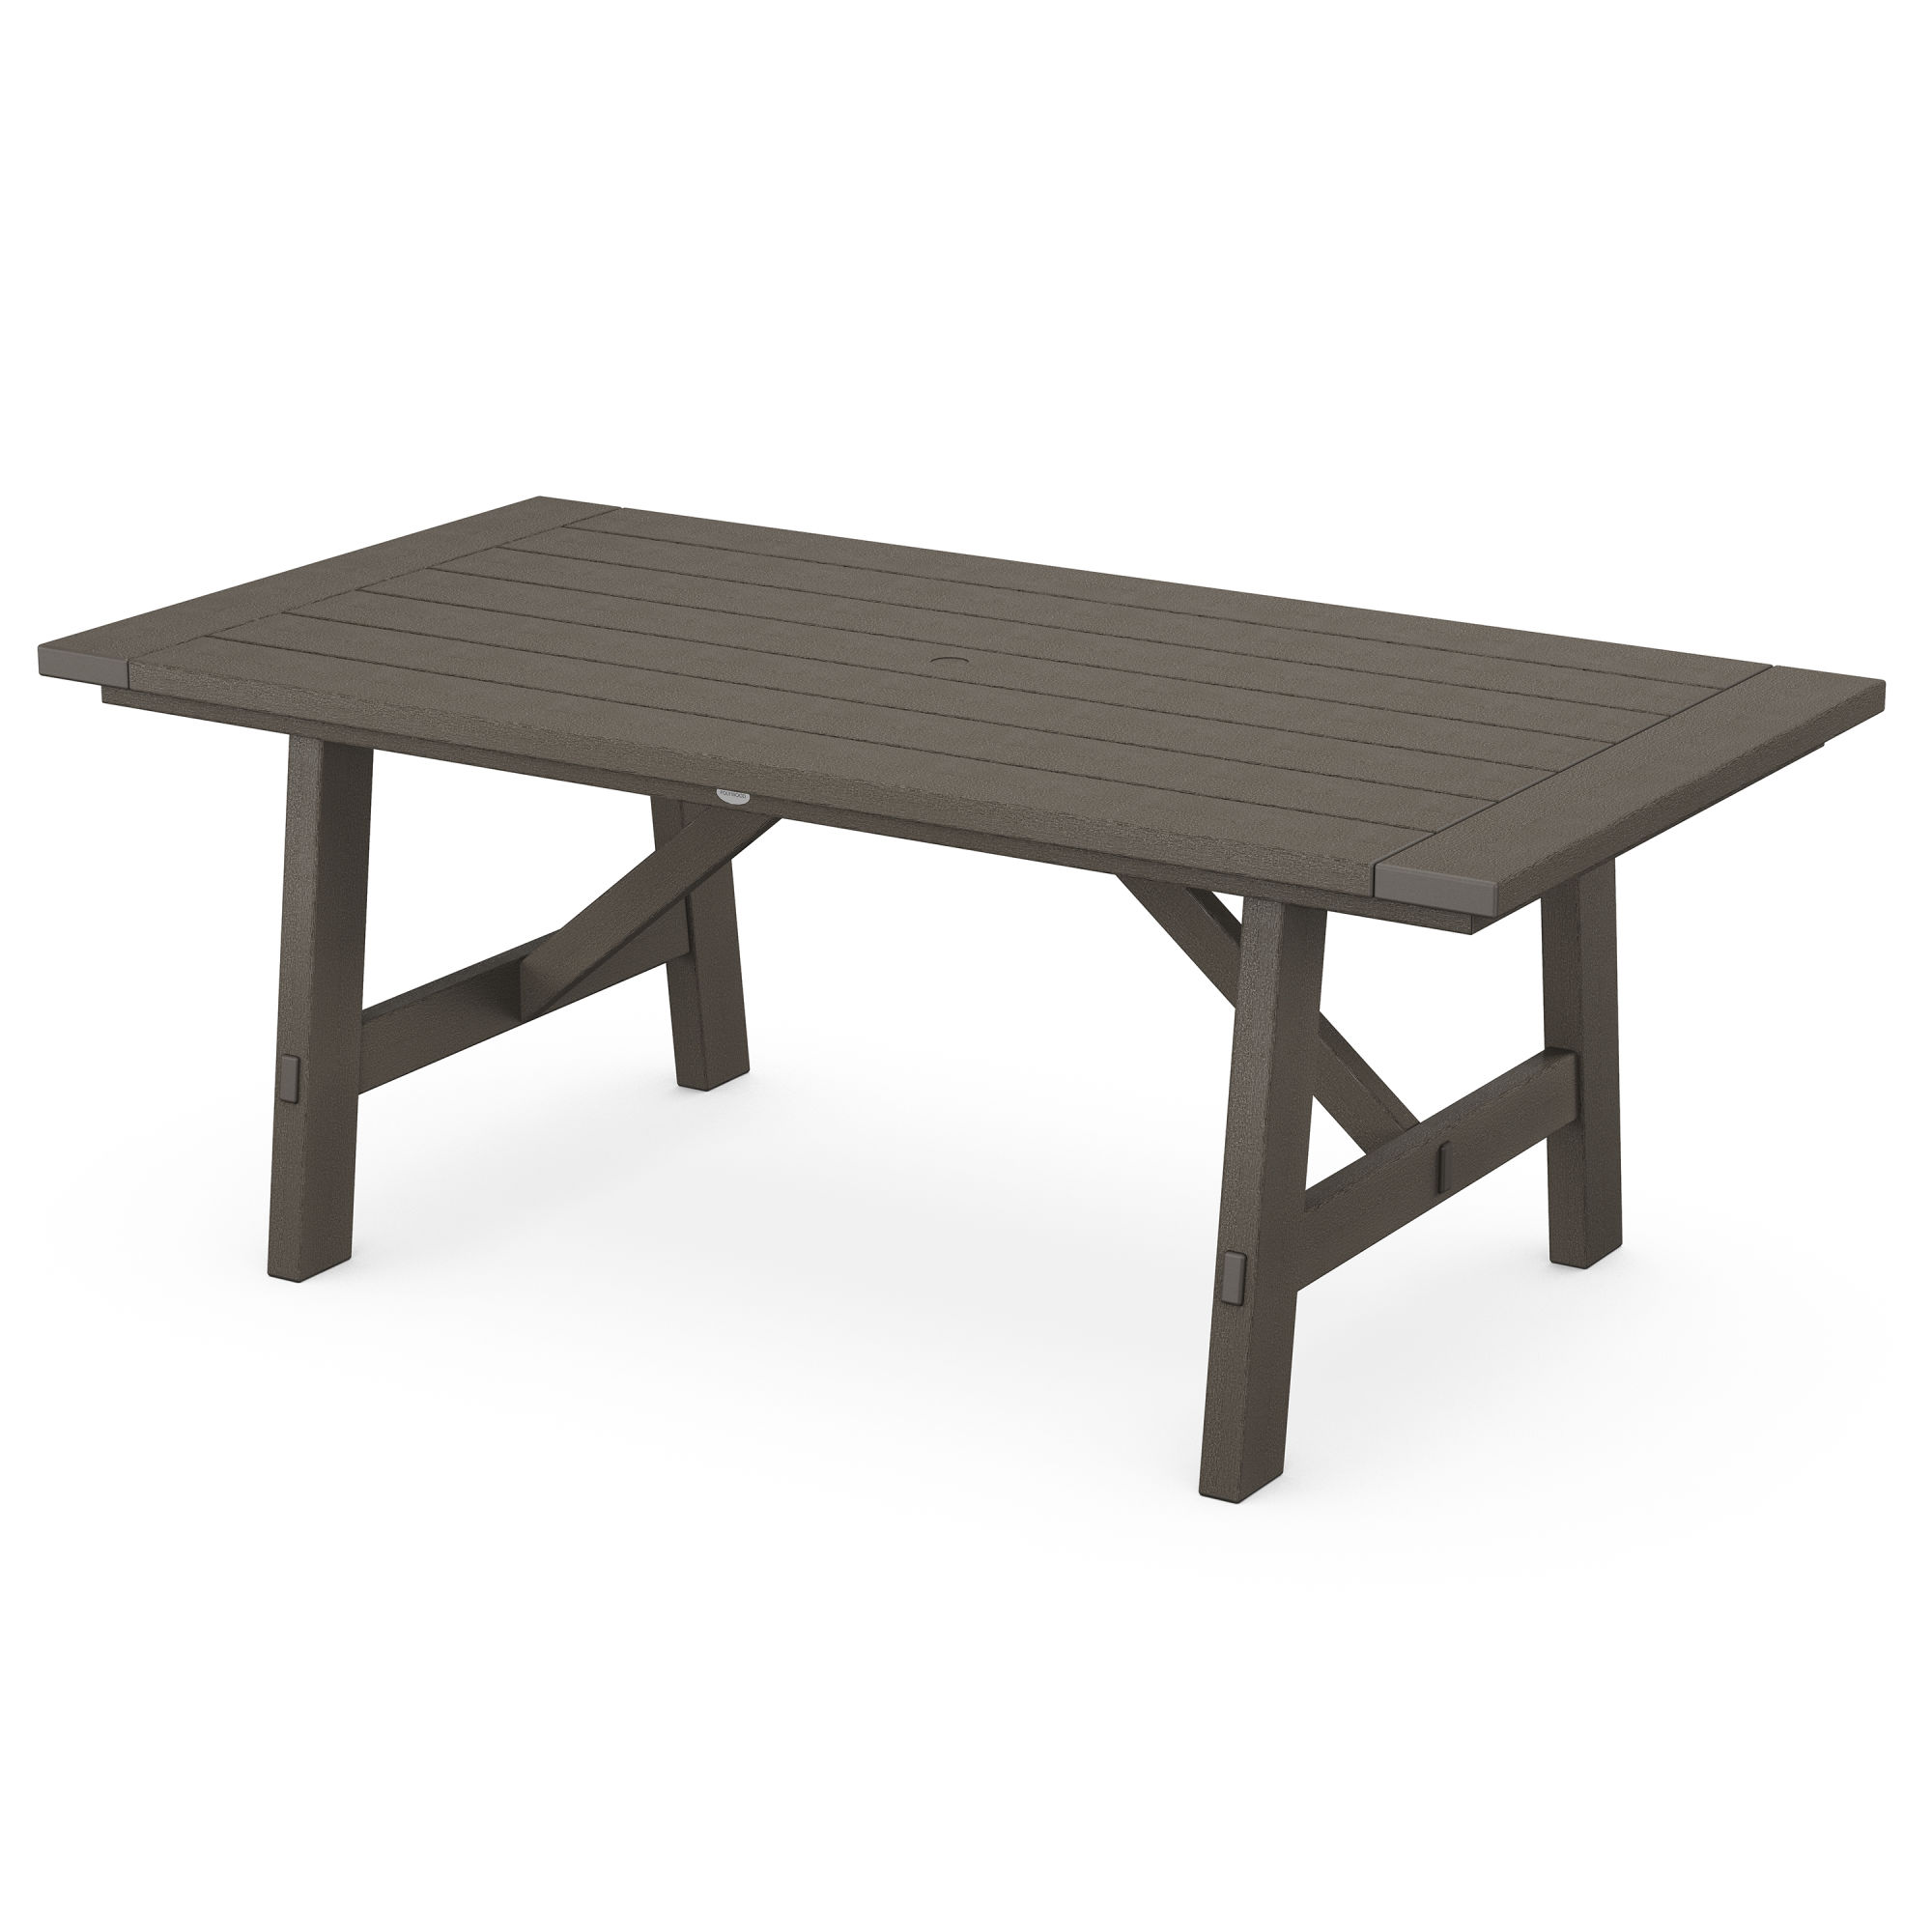 Picture of: Polywood Rustic Farmhouse 39 X 75 Dining Table In Vintage Finish Pl83 T3l2v Polywood Official Store